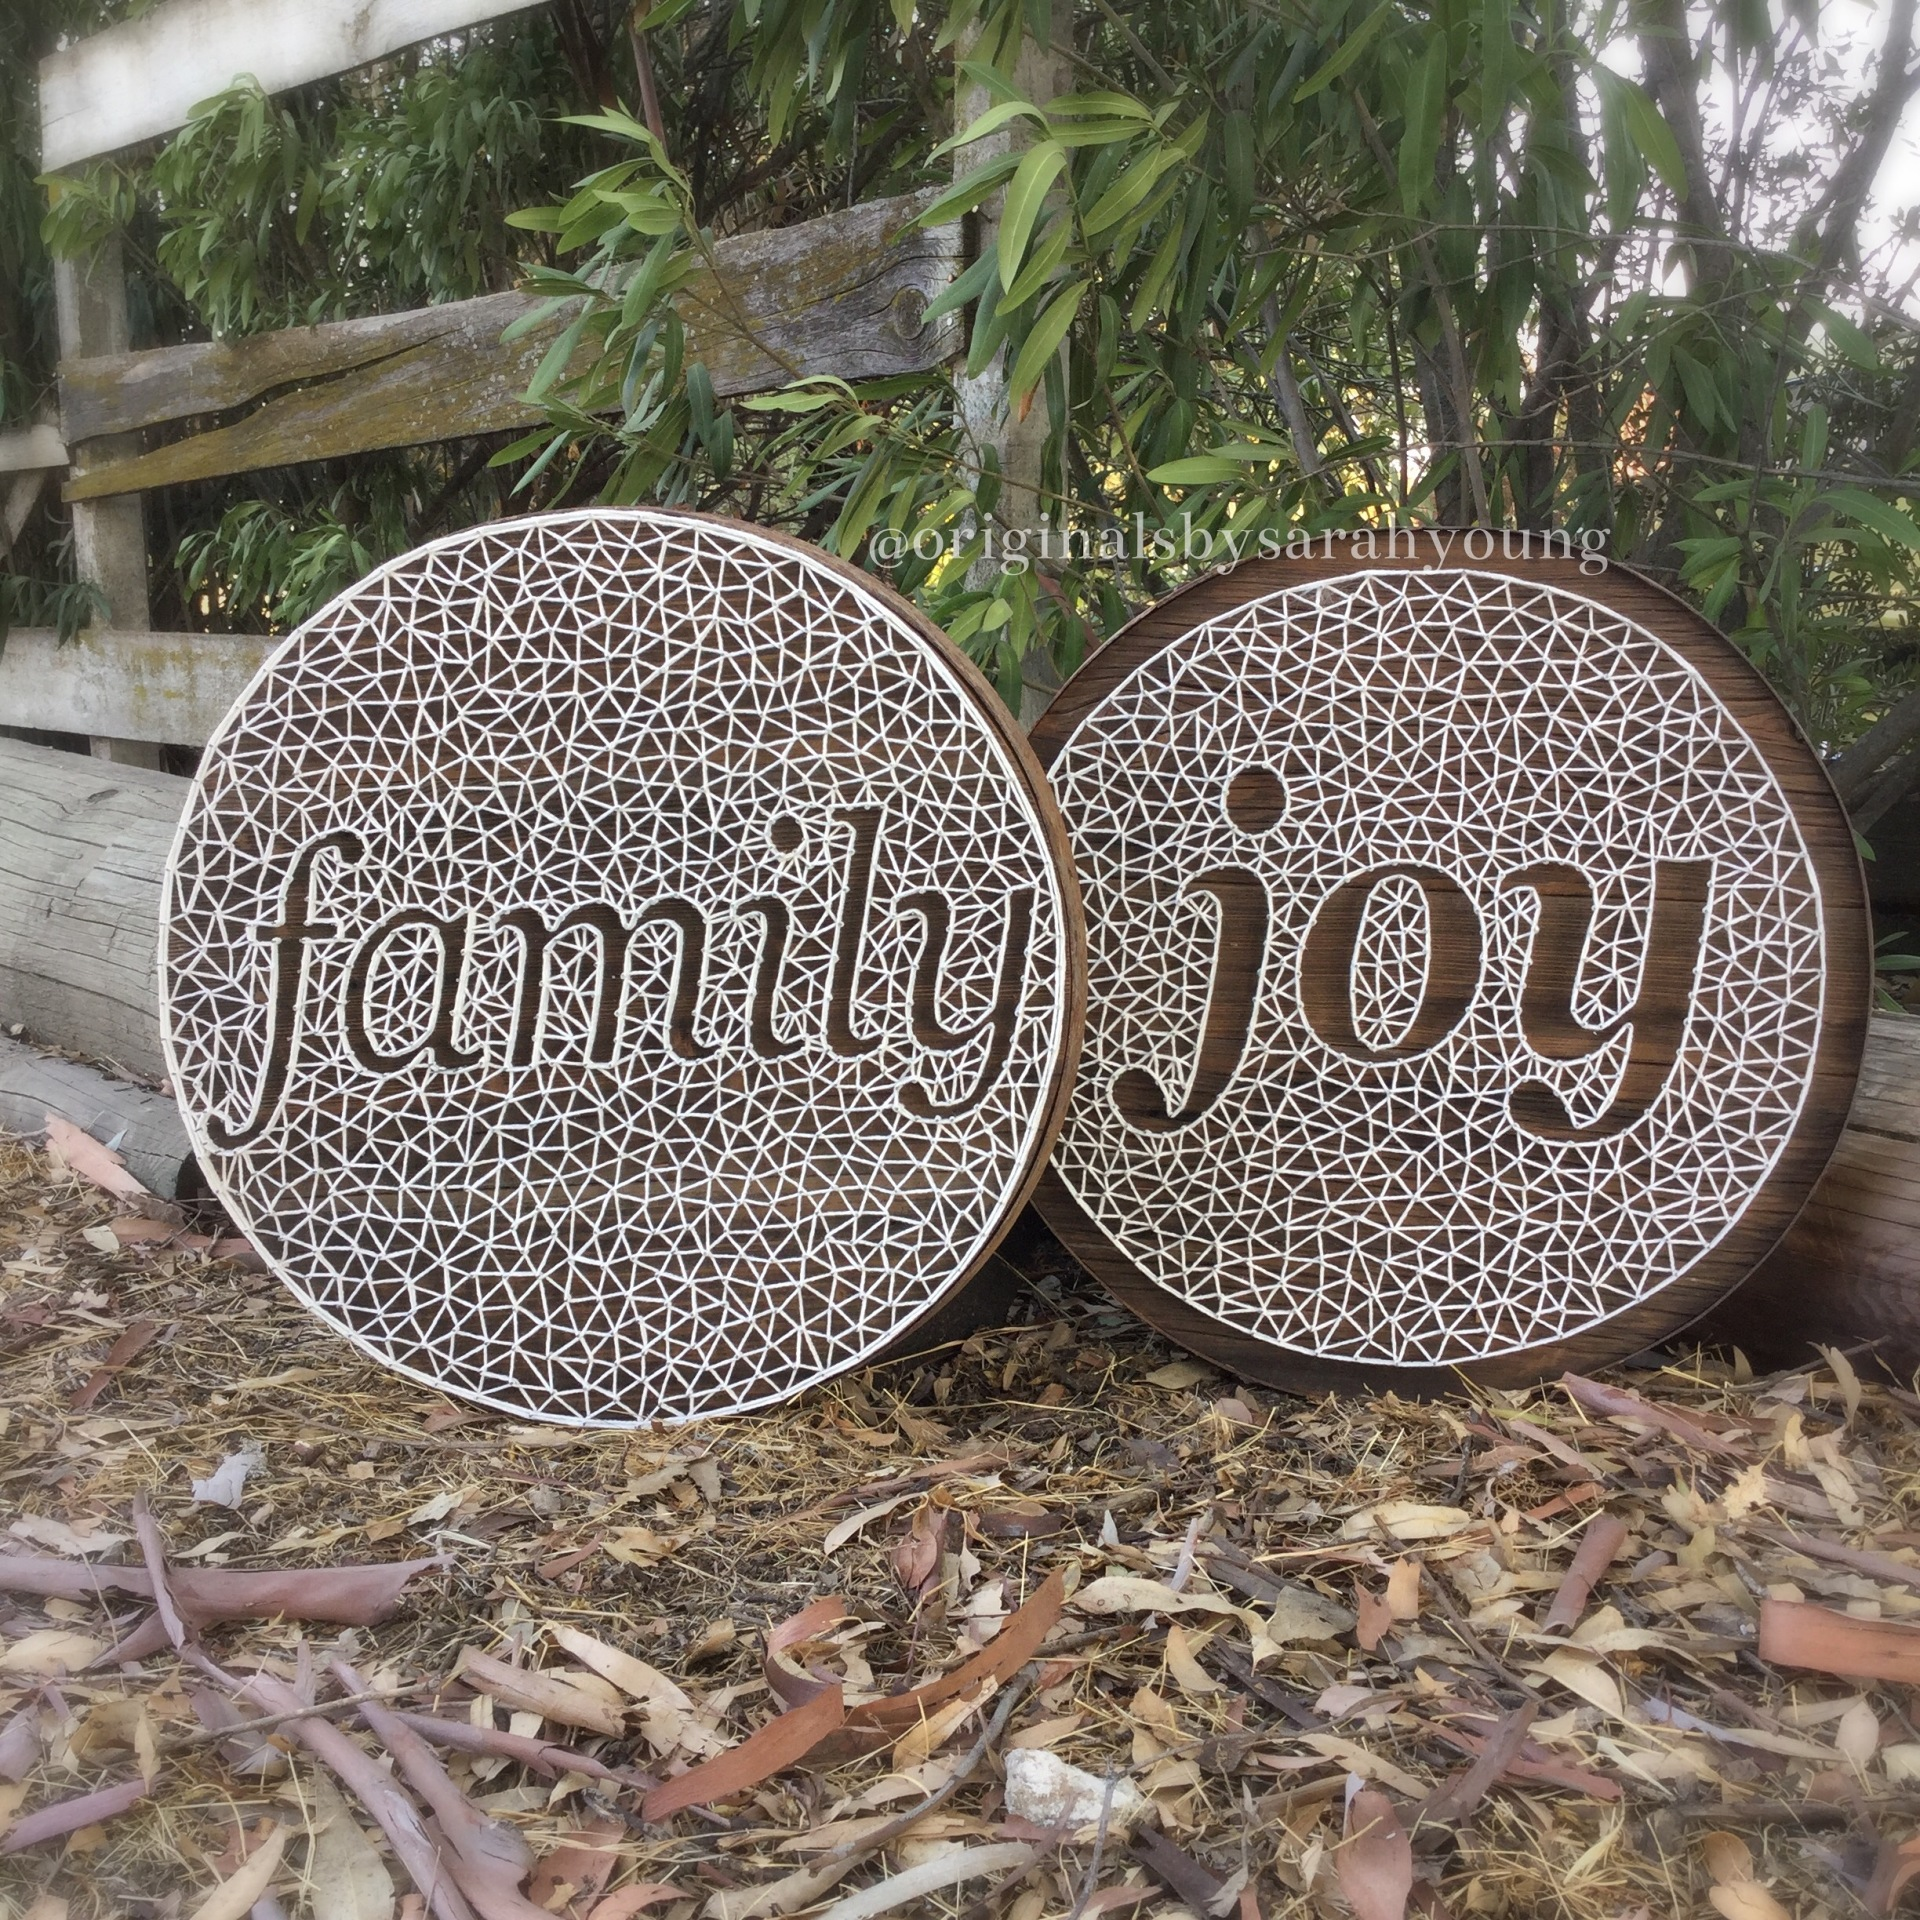 Textured String Word in Barrel Ring Frame